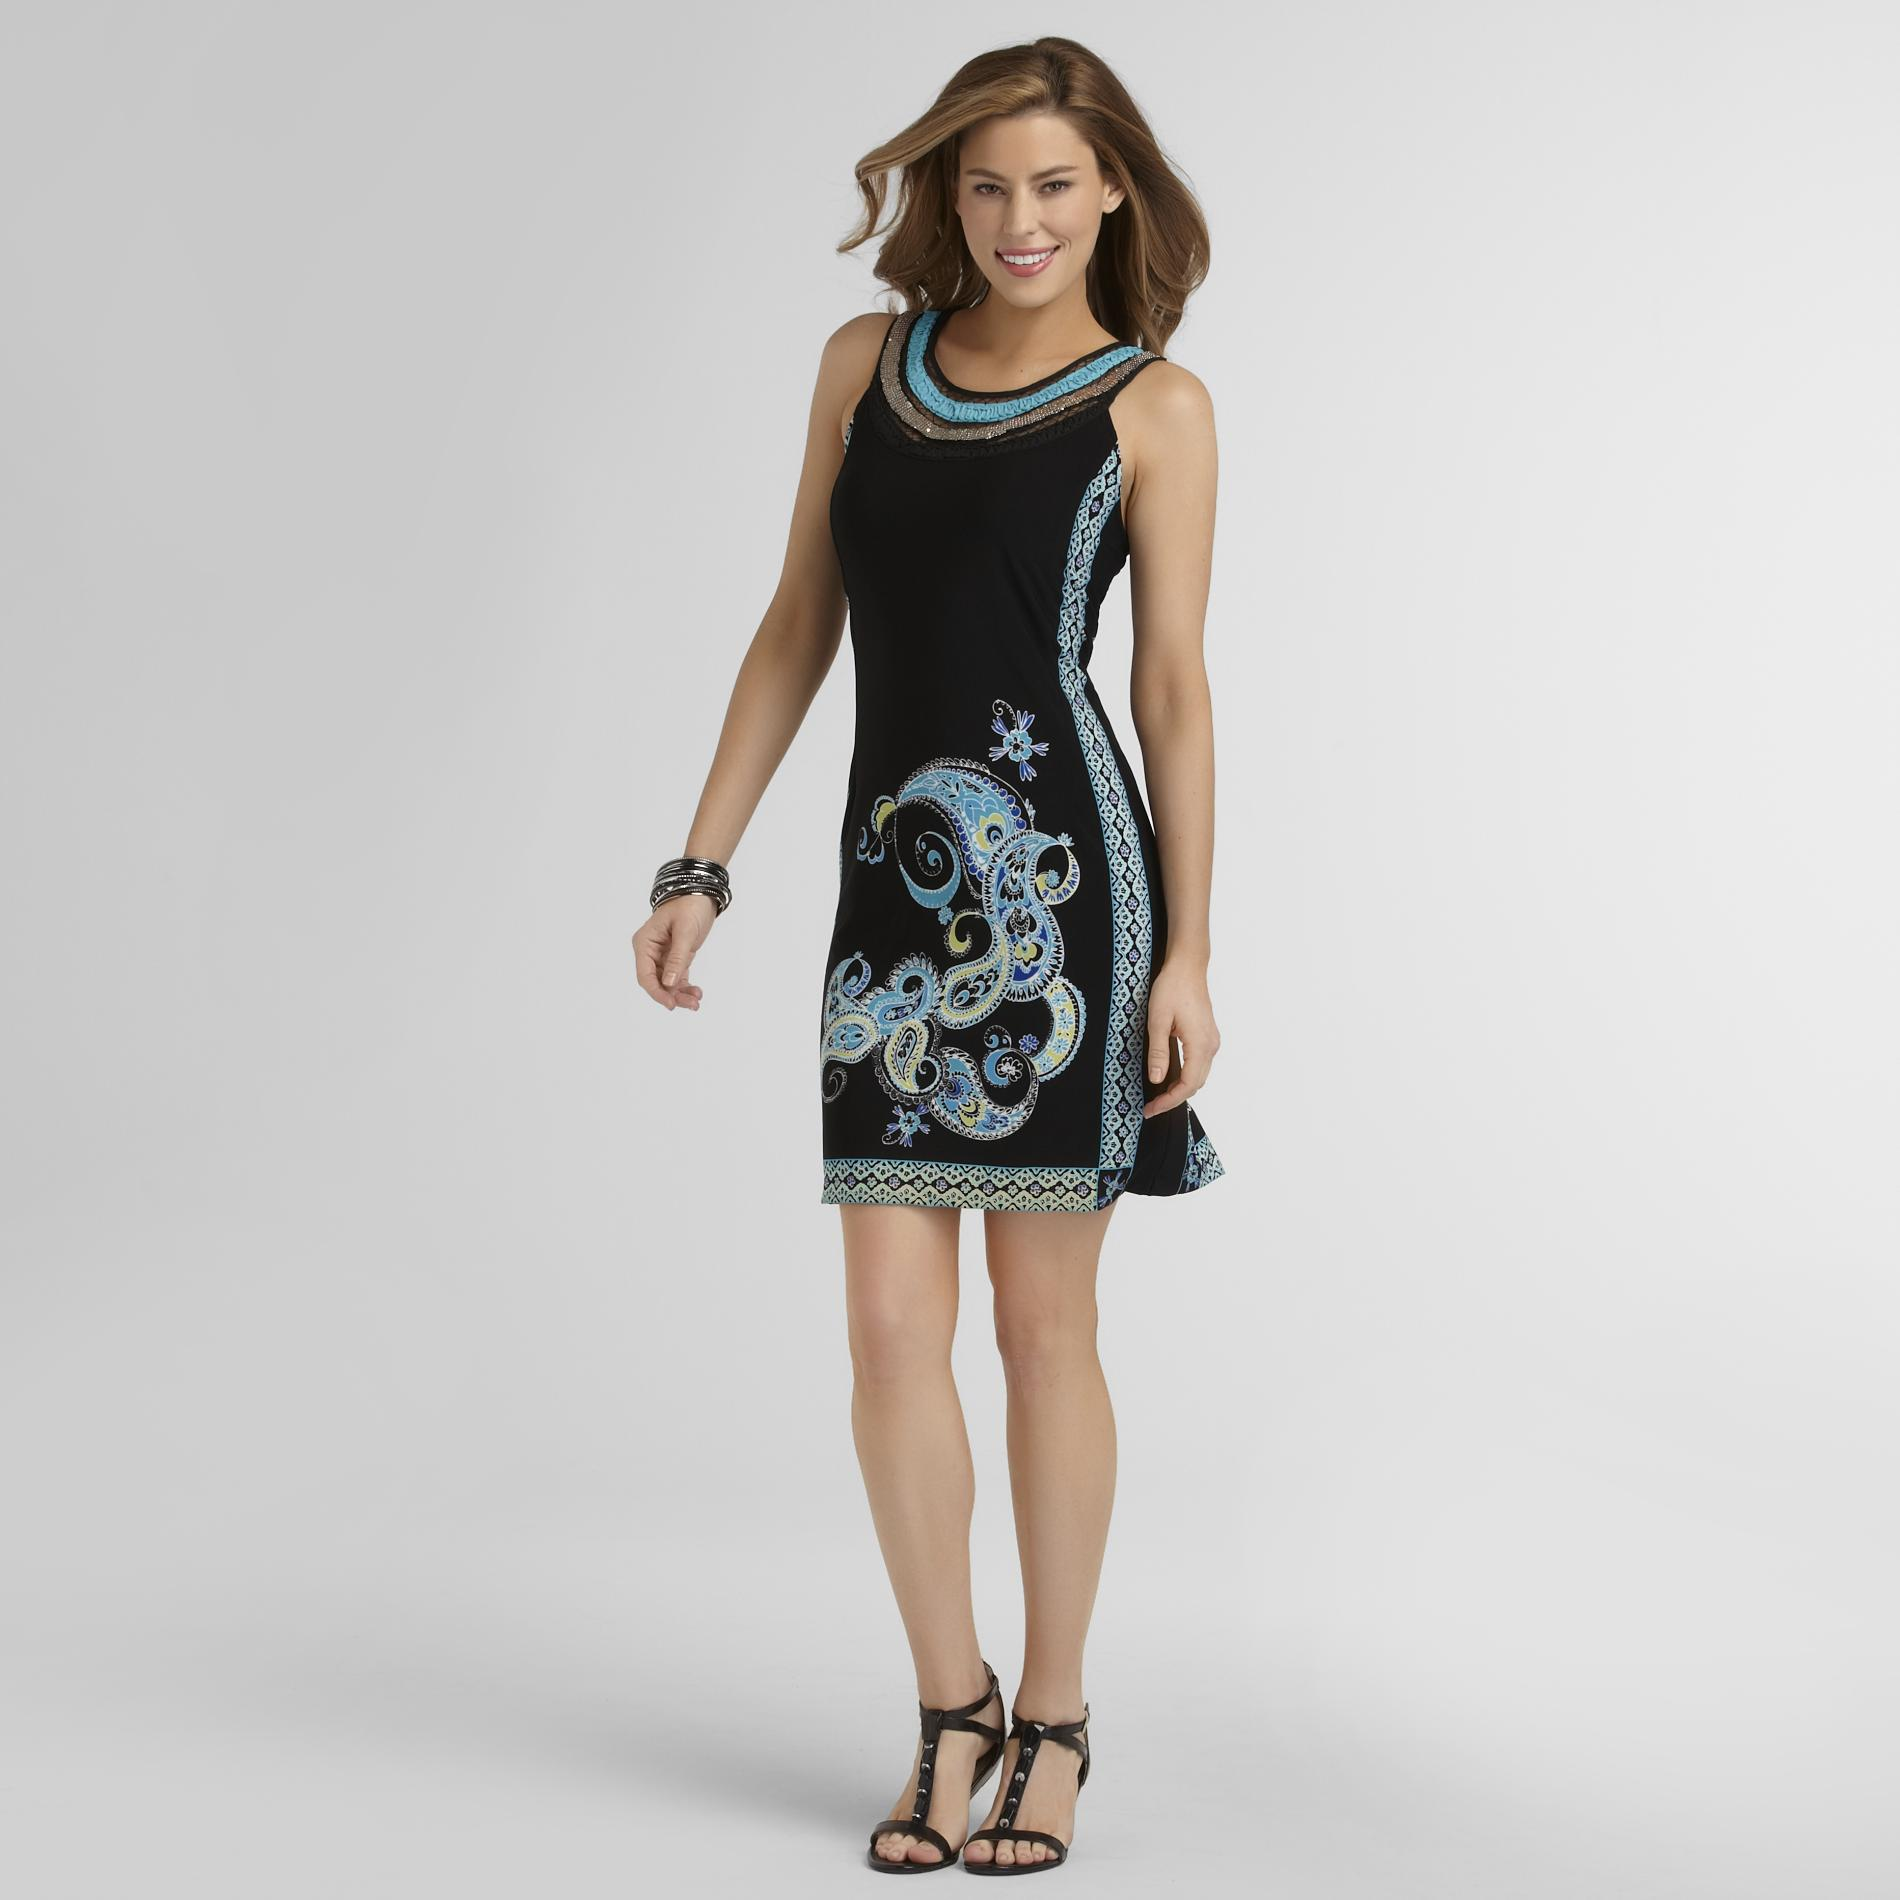 Studio 1 Women's Sleeveless Dress - Paisley at Sears.com